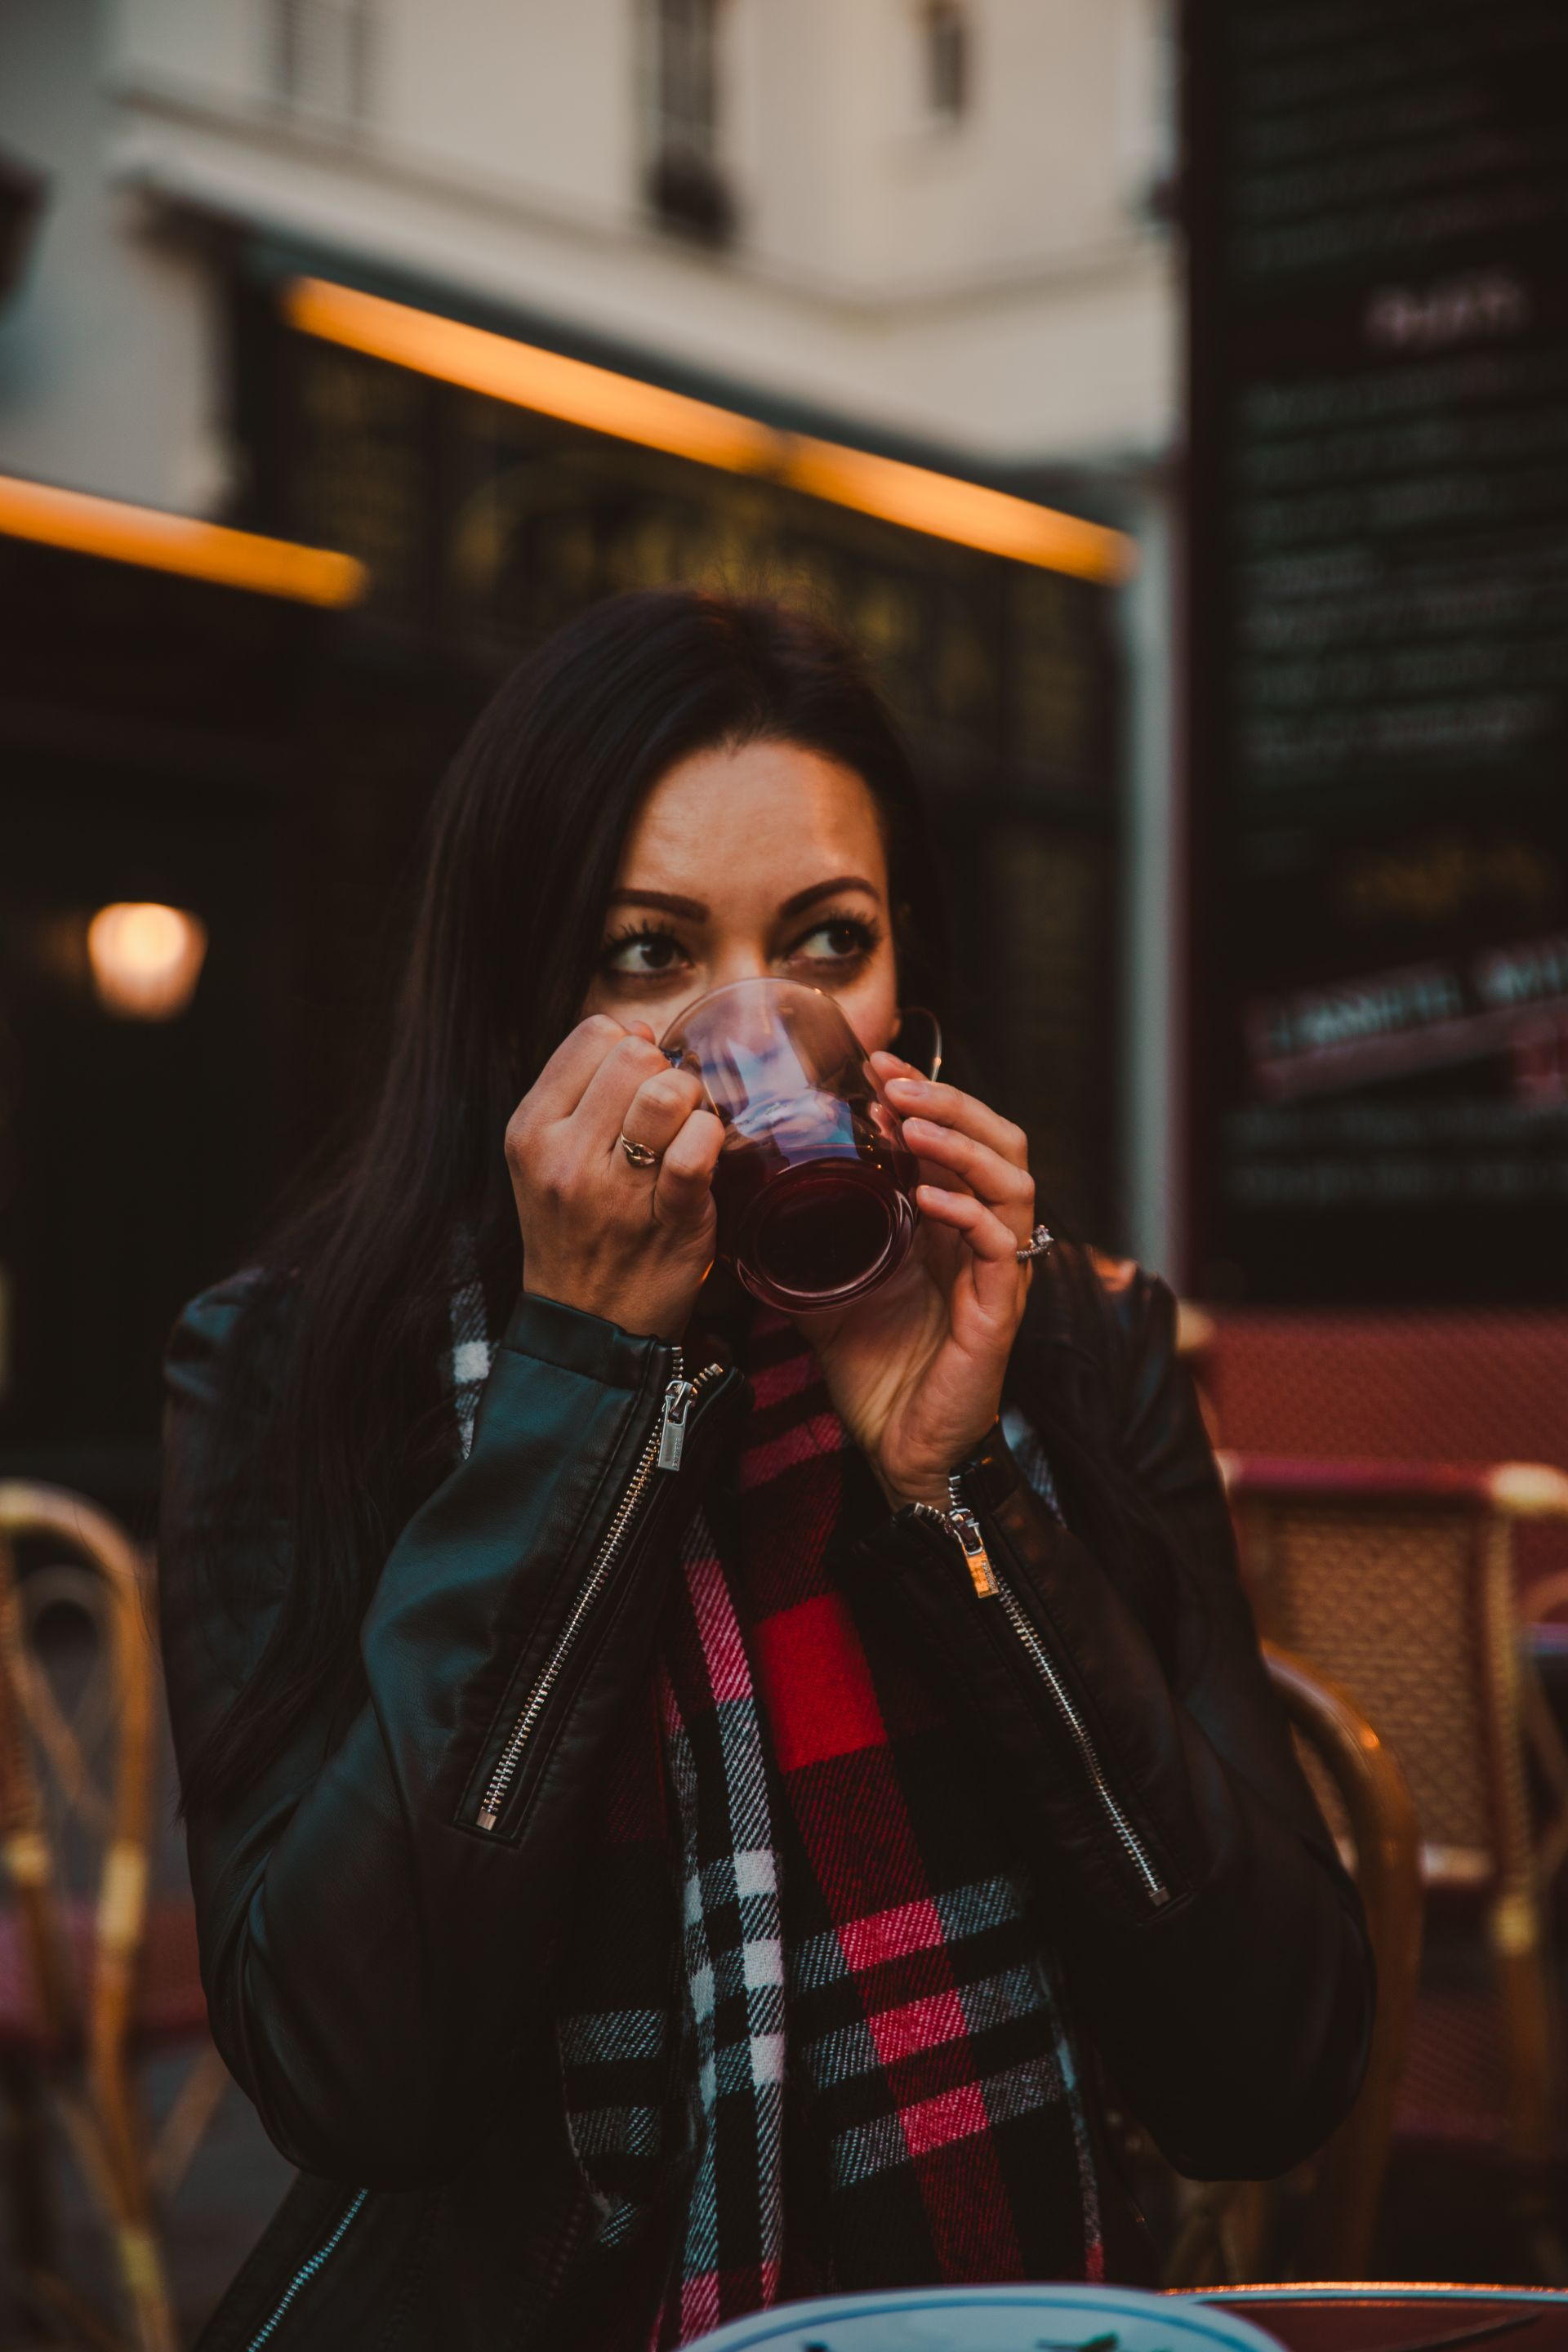 Natty Drinking Mulled Wine at Le Consulat in Paris France